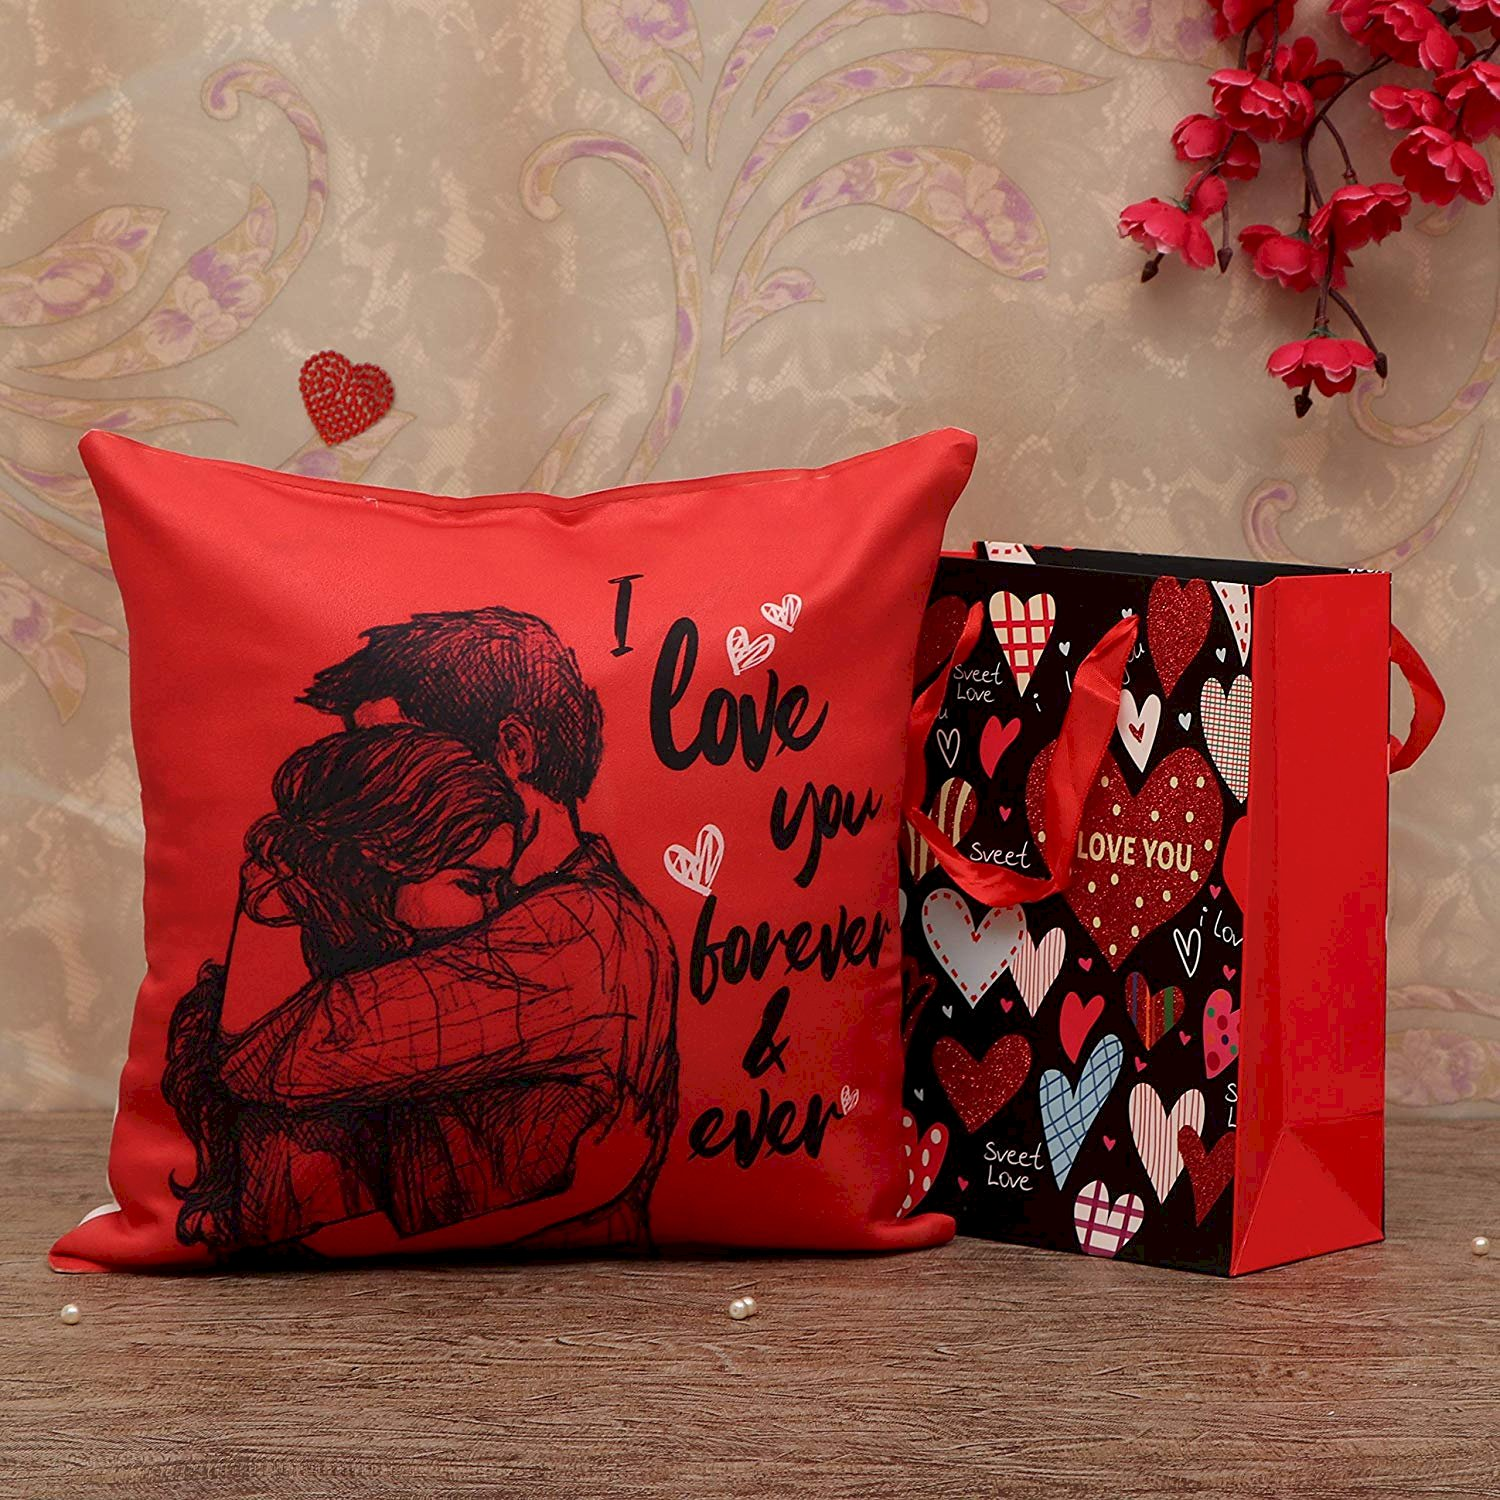 Tied Ribbons Valentine Day Gift For Girls Boys Boyfriend Girlfriend Husband Wife Romantic Gift Combo Valentine Special Cushion Cover With Filler 12 X 12 Inch And Carry Bag Fashion Marketplace